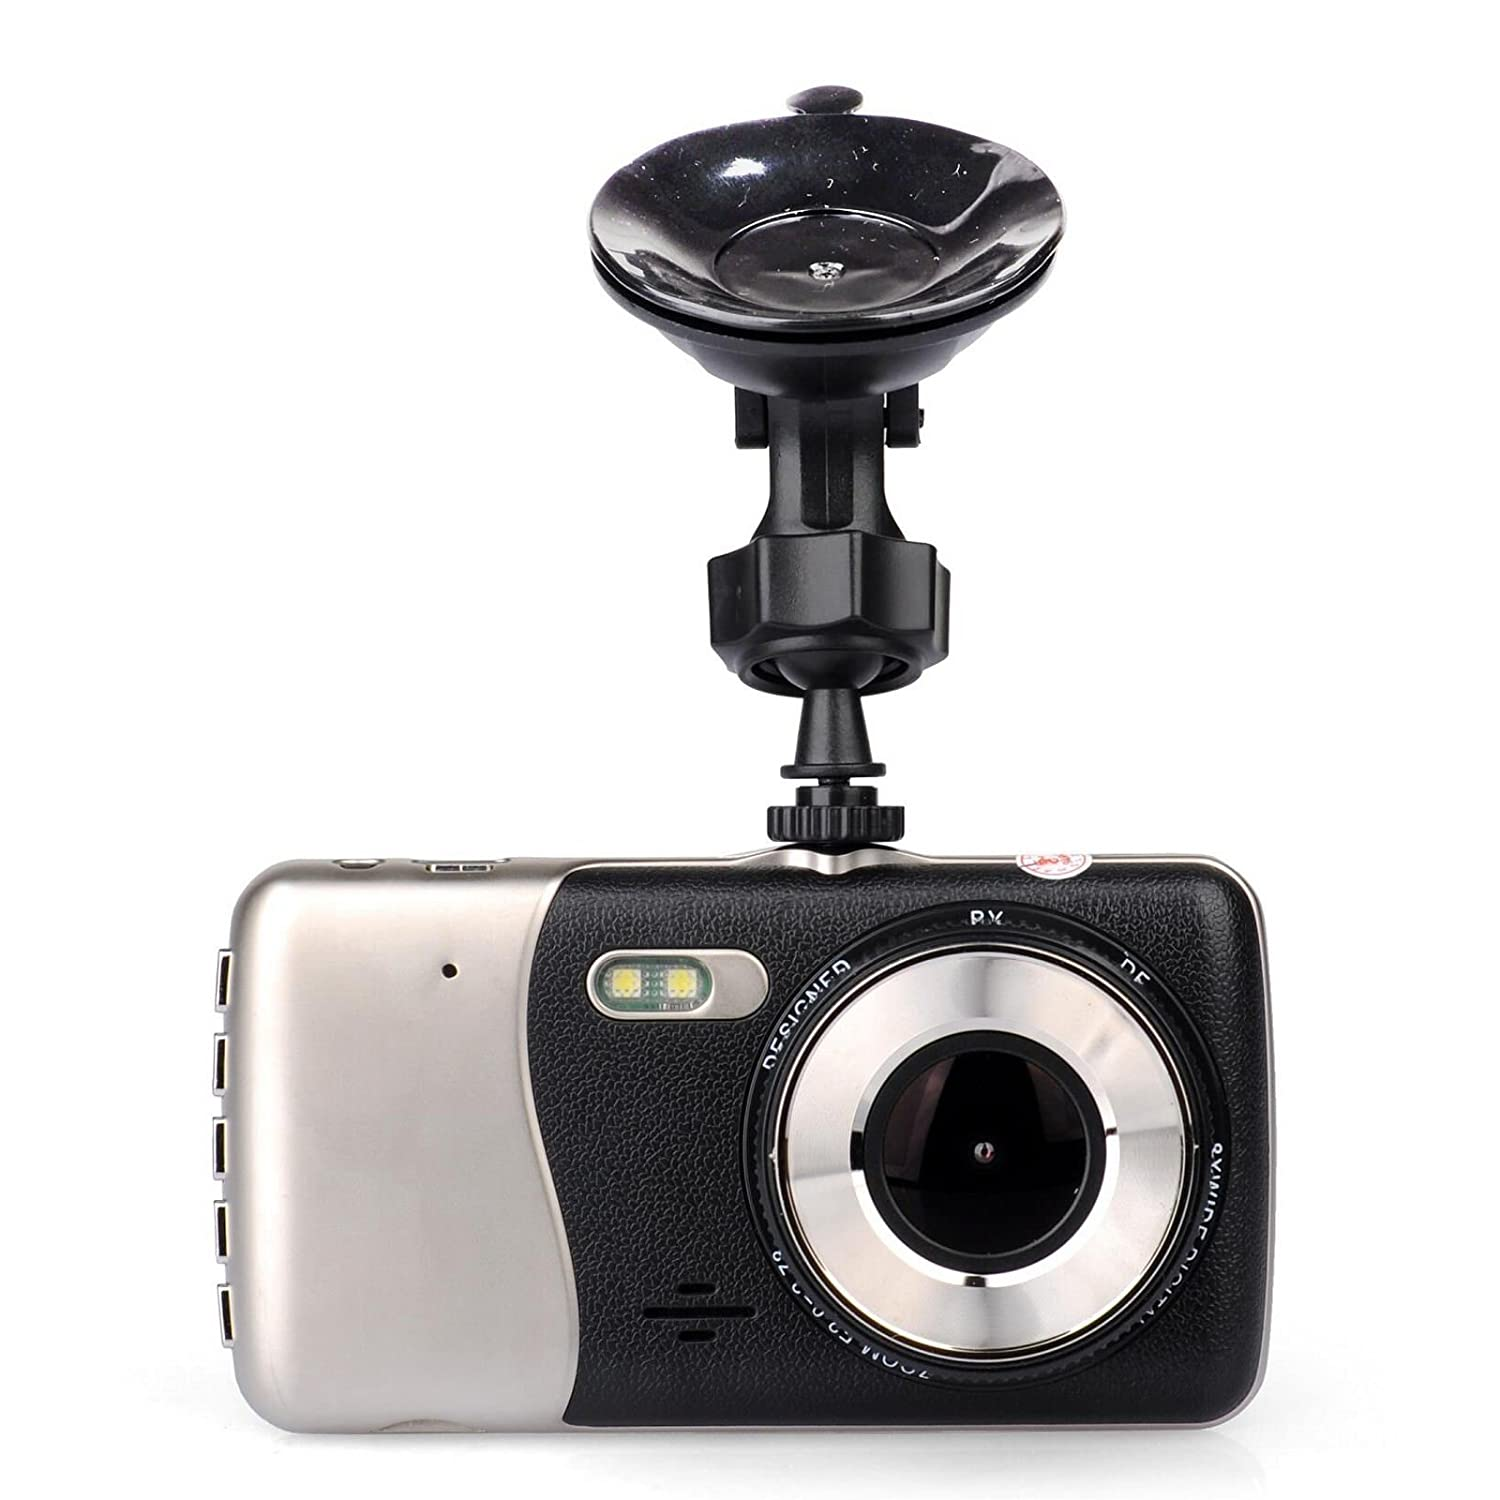 WDR G-Sensor Lian LifeStyle Car Dash Cam 4.0 FHD 1080p 170 Degree Wide Angle Dashboard Camera Recorder with AR-0330 Video Sensor Loop Recording+16GB SD LY780 LLSLY LLSLY780